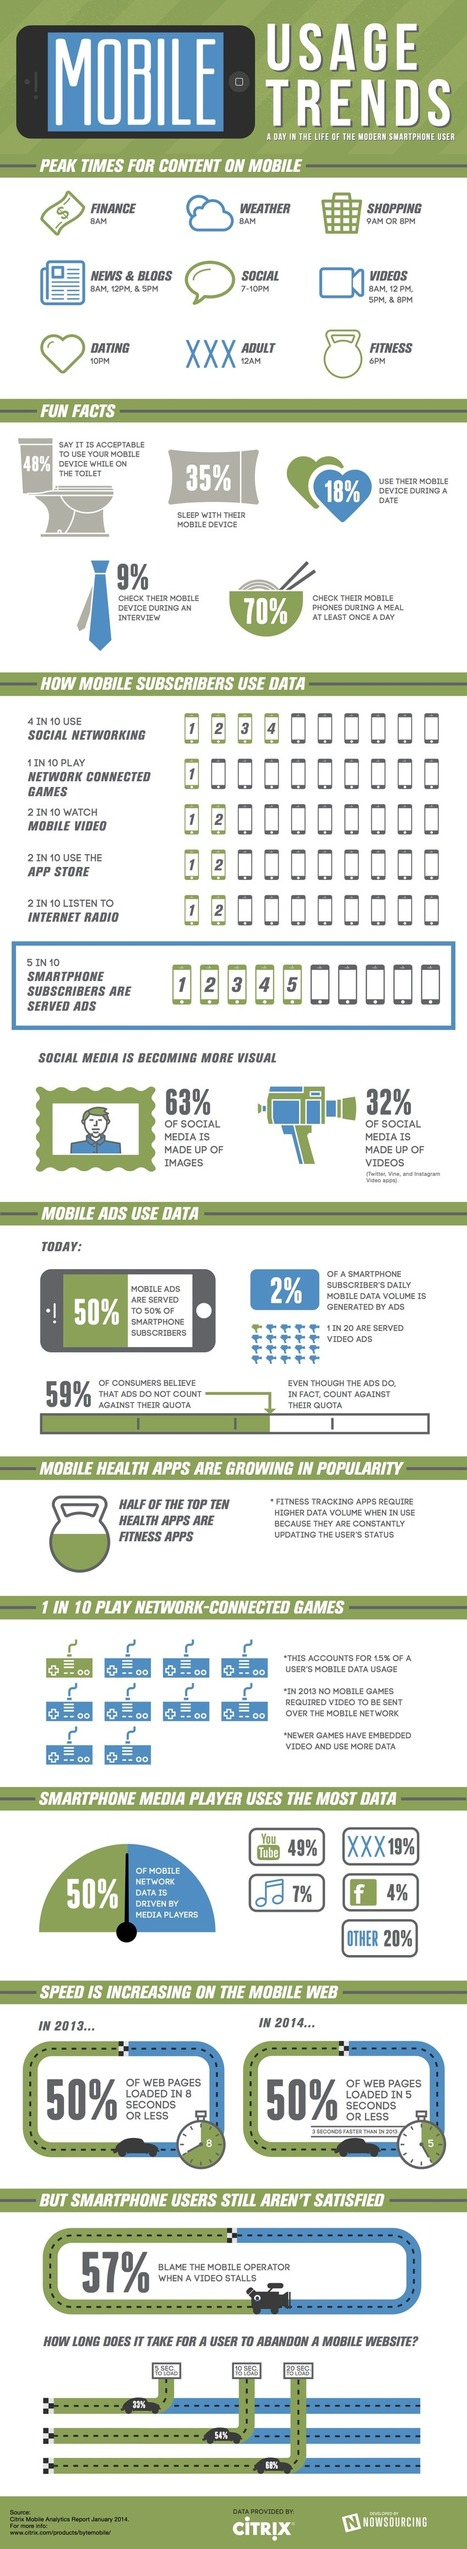 A Day in the Life of the Modern Smartphone User [Infographic] | SpisanieTO | Scoop.it